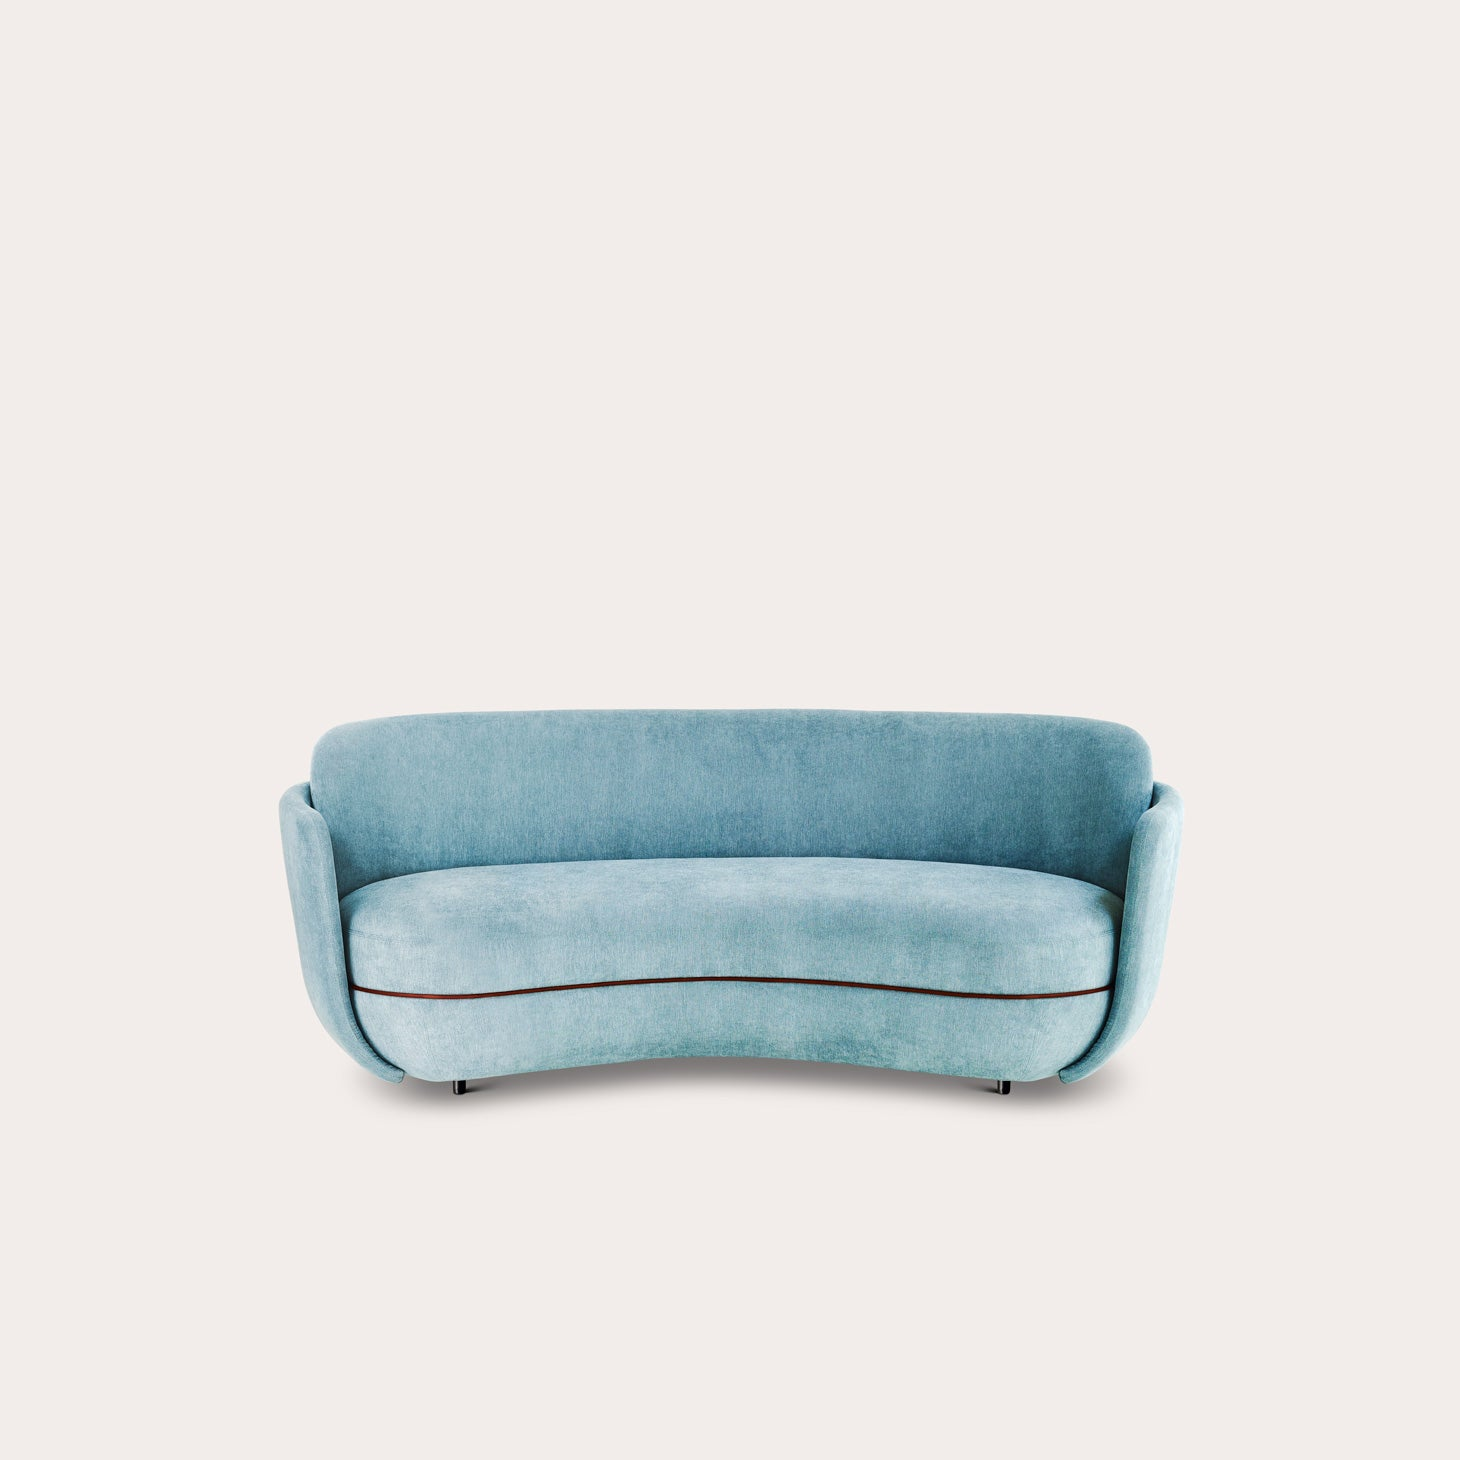 Miles Sofa Seating Sebastian Herkner Designer Furniture Sku: 758-240-10220